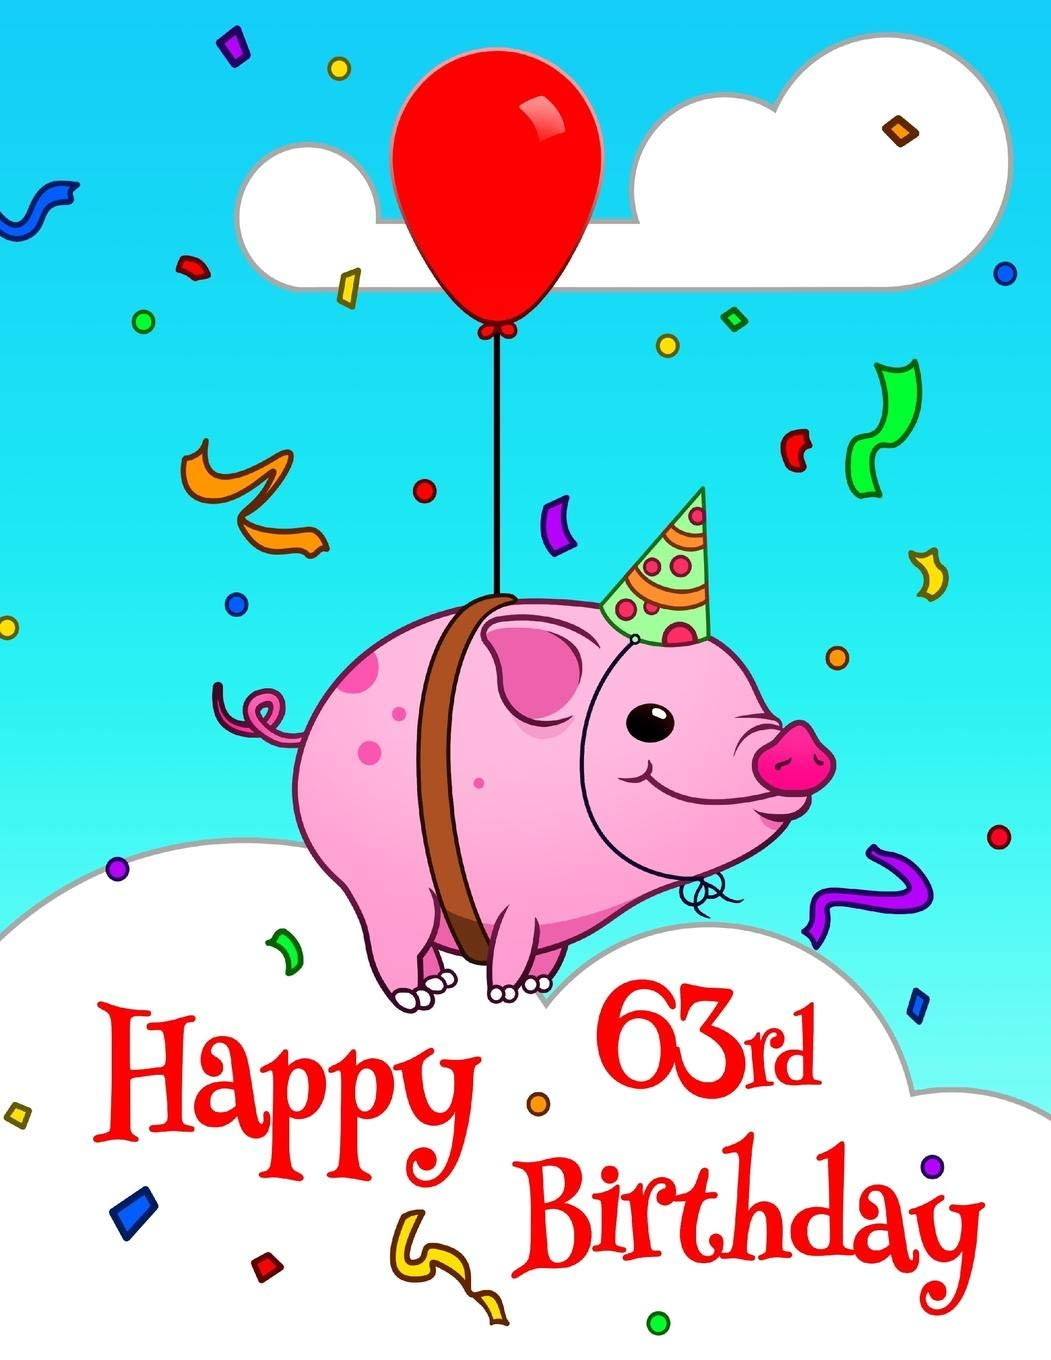 picture relating to Cute Printable Address Book named Content 63rd Birthday: Hefty Print Deal with Ebook with Lovely Pig